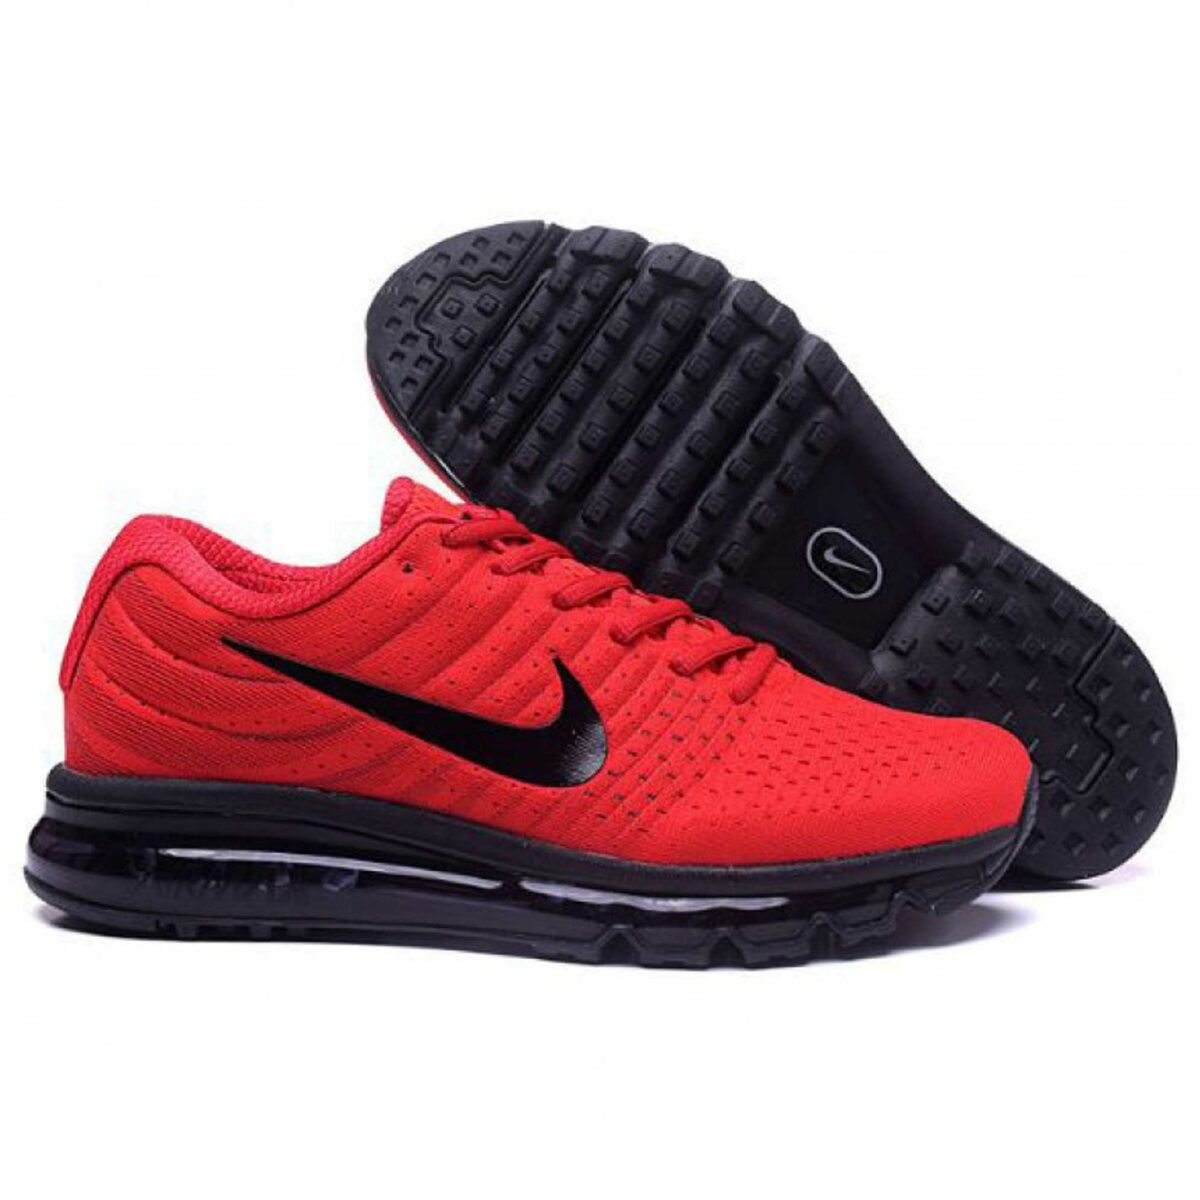 nike air max 2017 red black 849559-121 купить